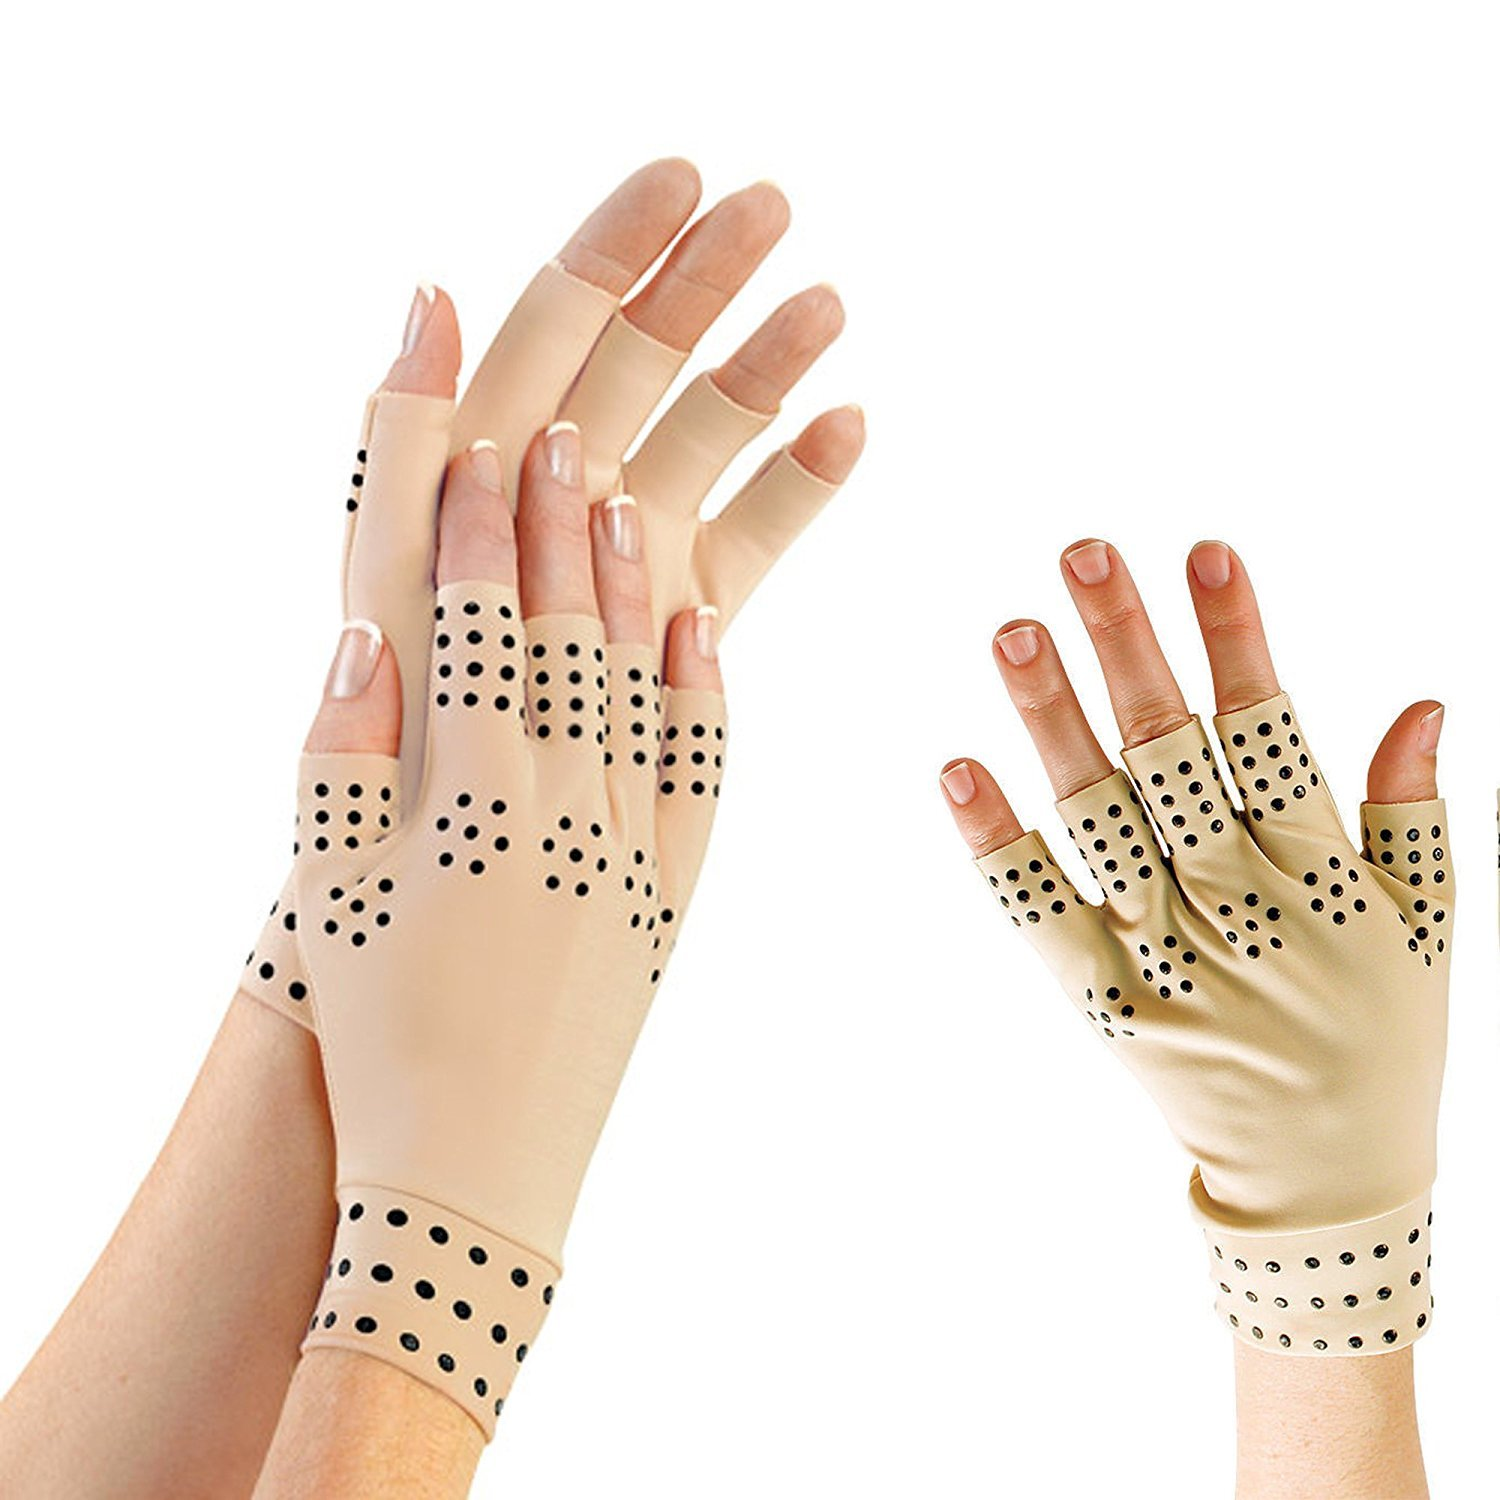 Unisex Medical Grade Pain Away Arthritis Relief Support Glove with Magnetic Therapy - Nude